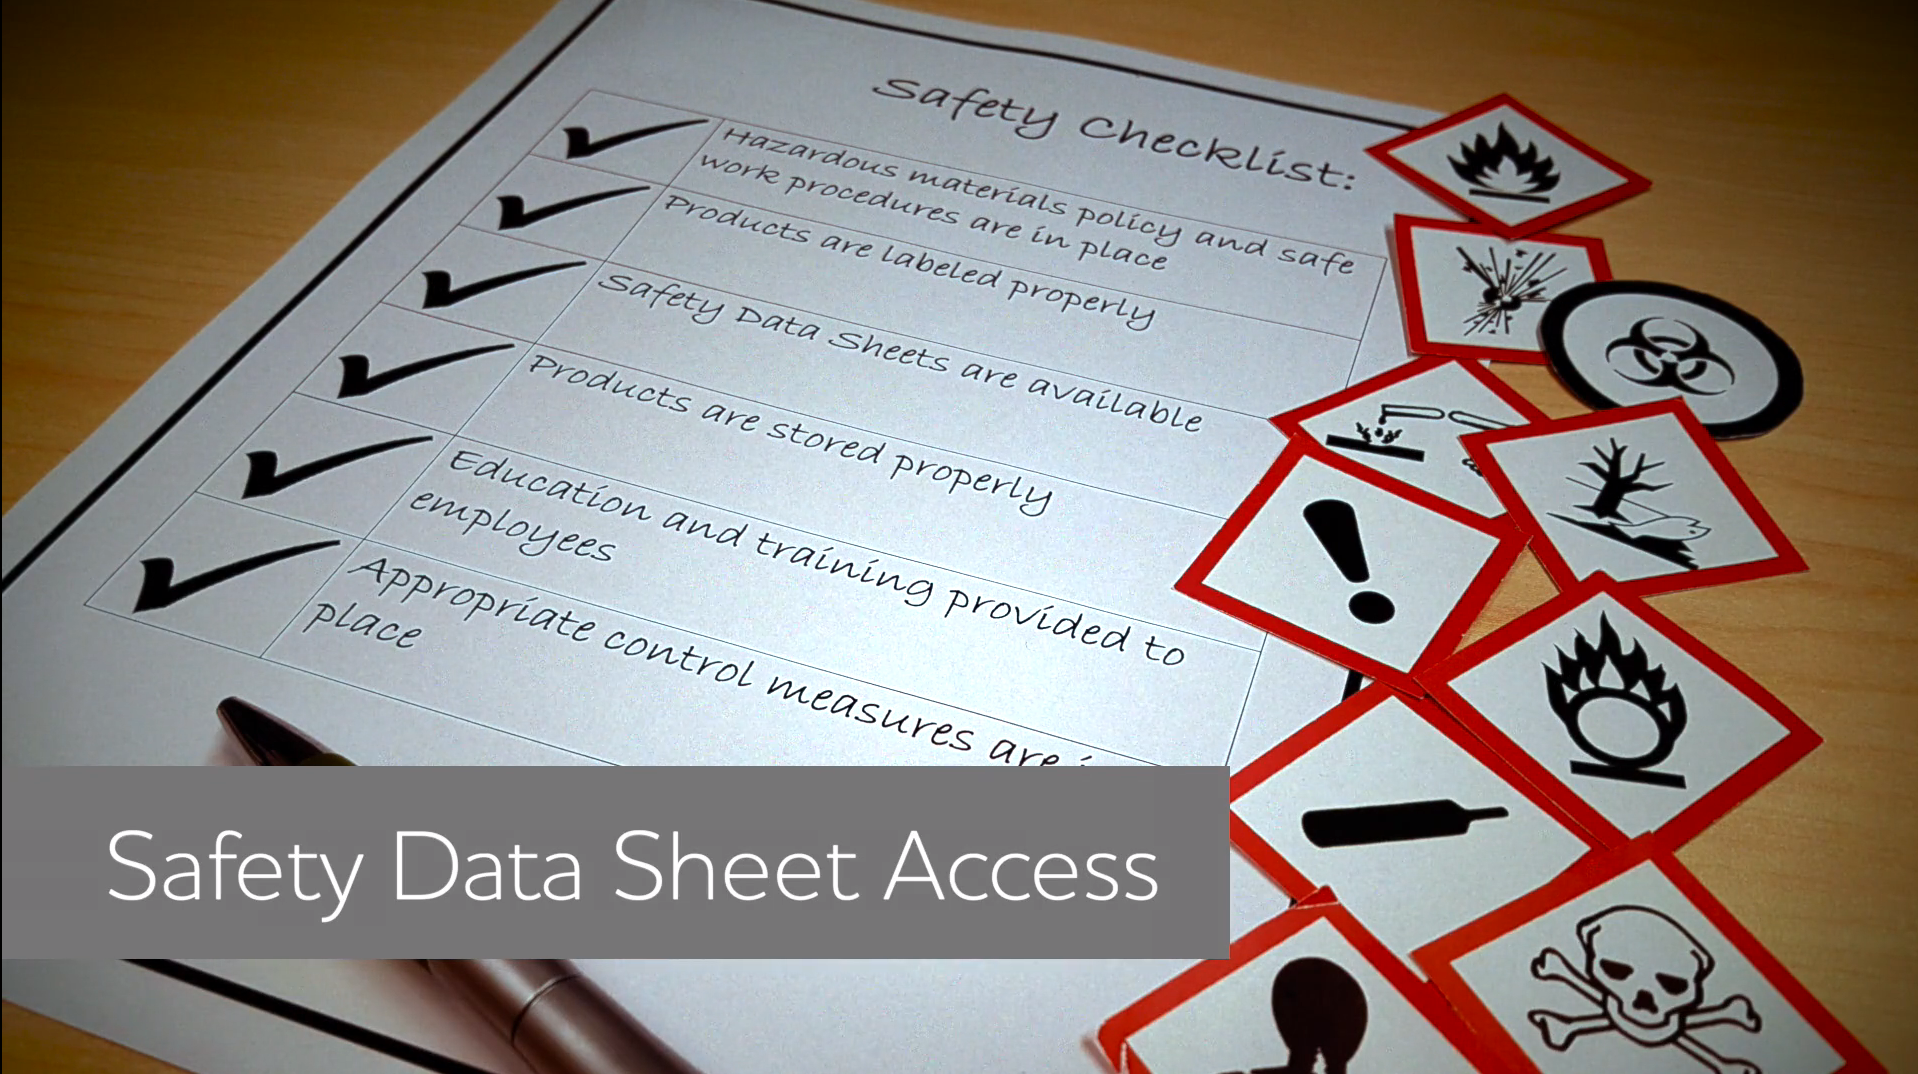 Safety Data Sheet (SDS) Access